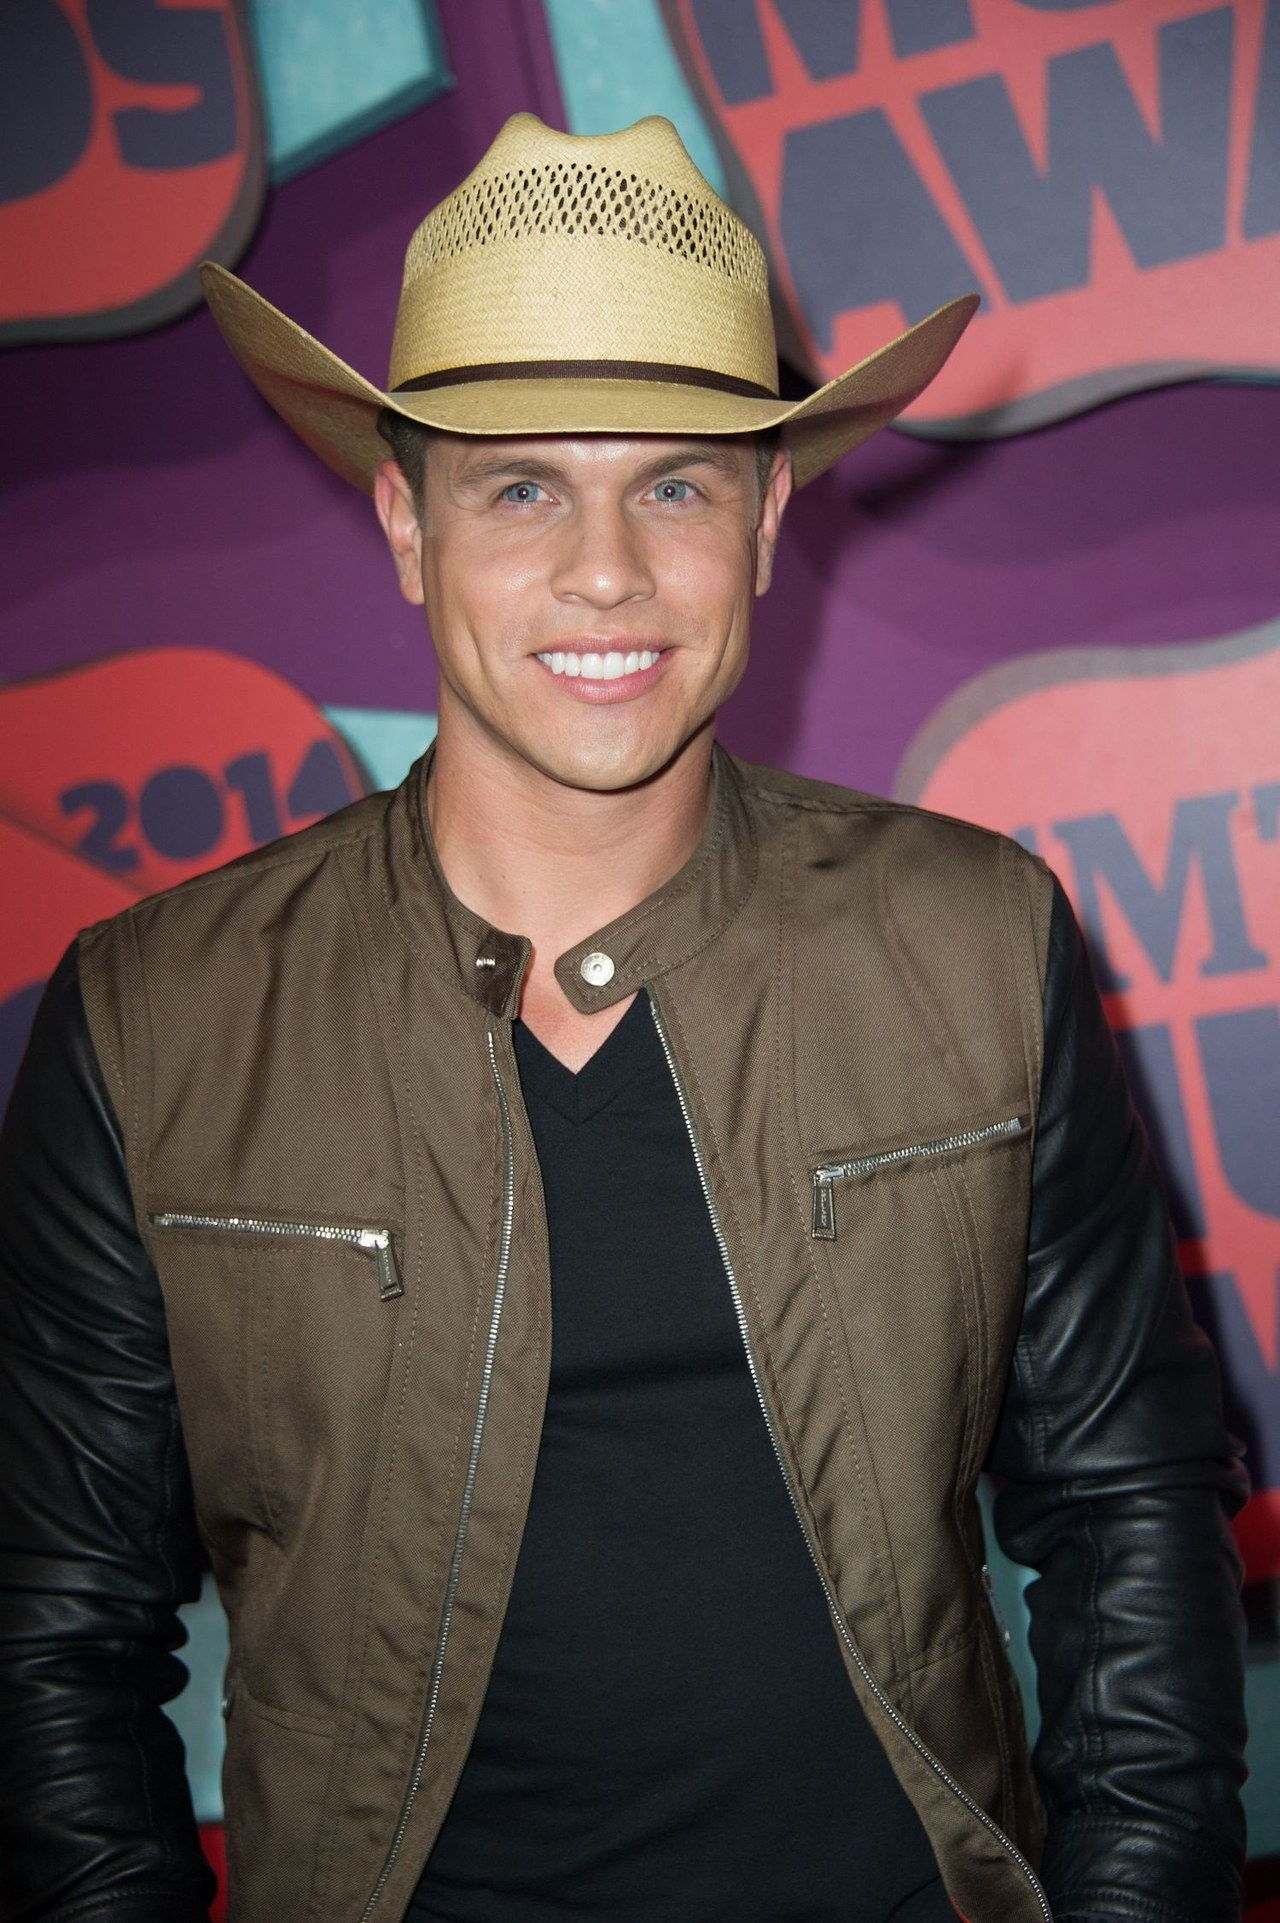 Major Country Music Figure Comes Out As Gay